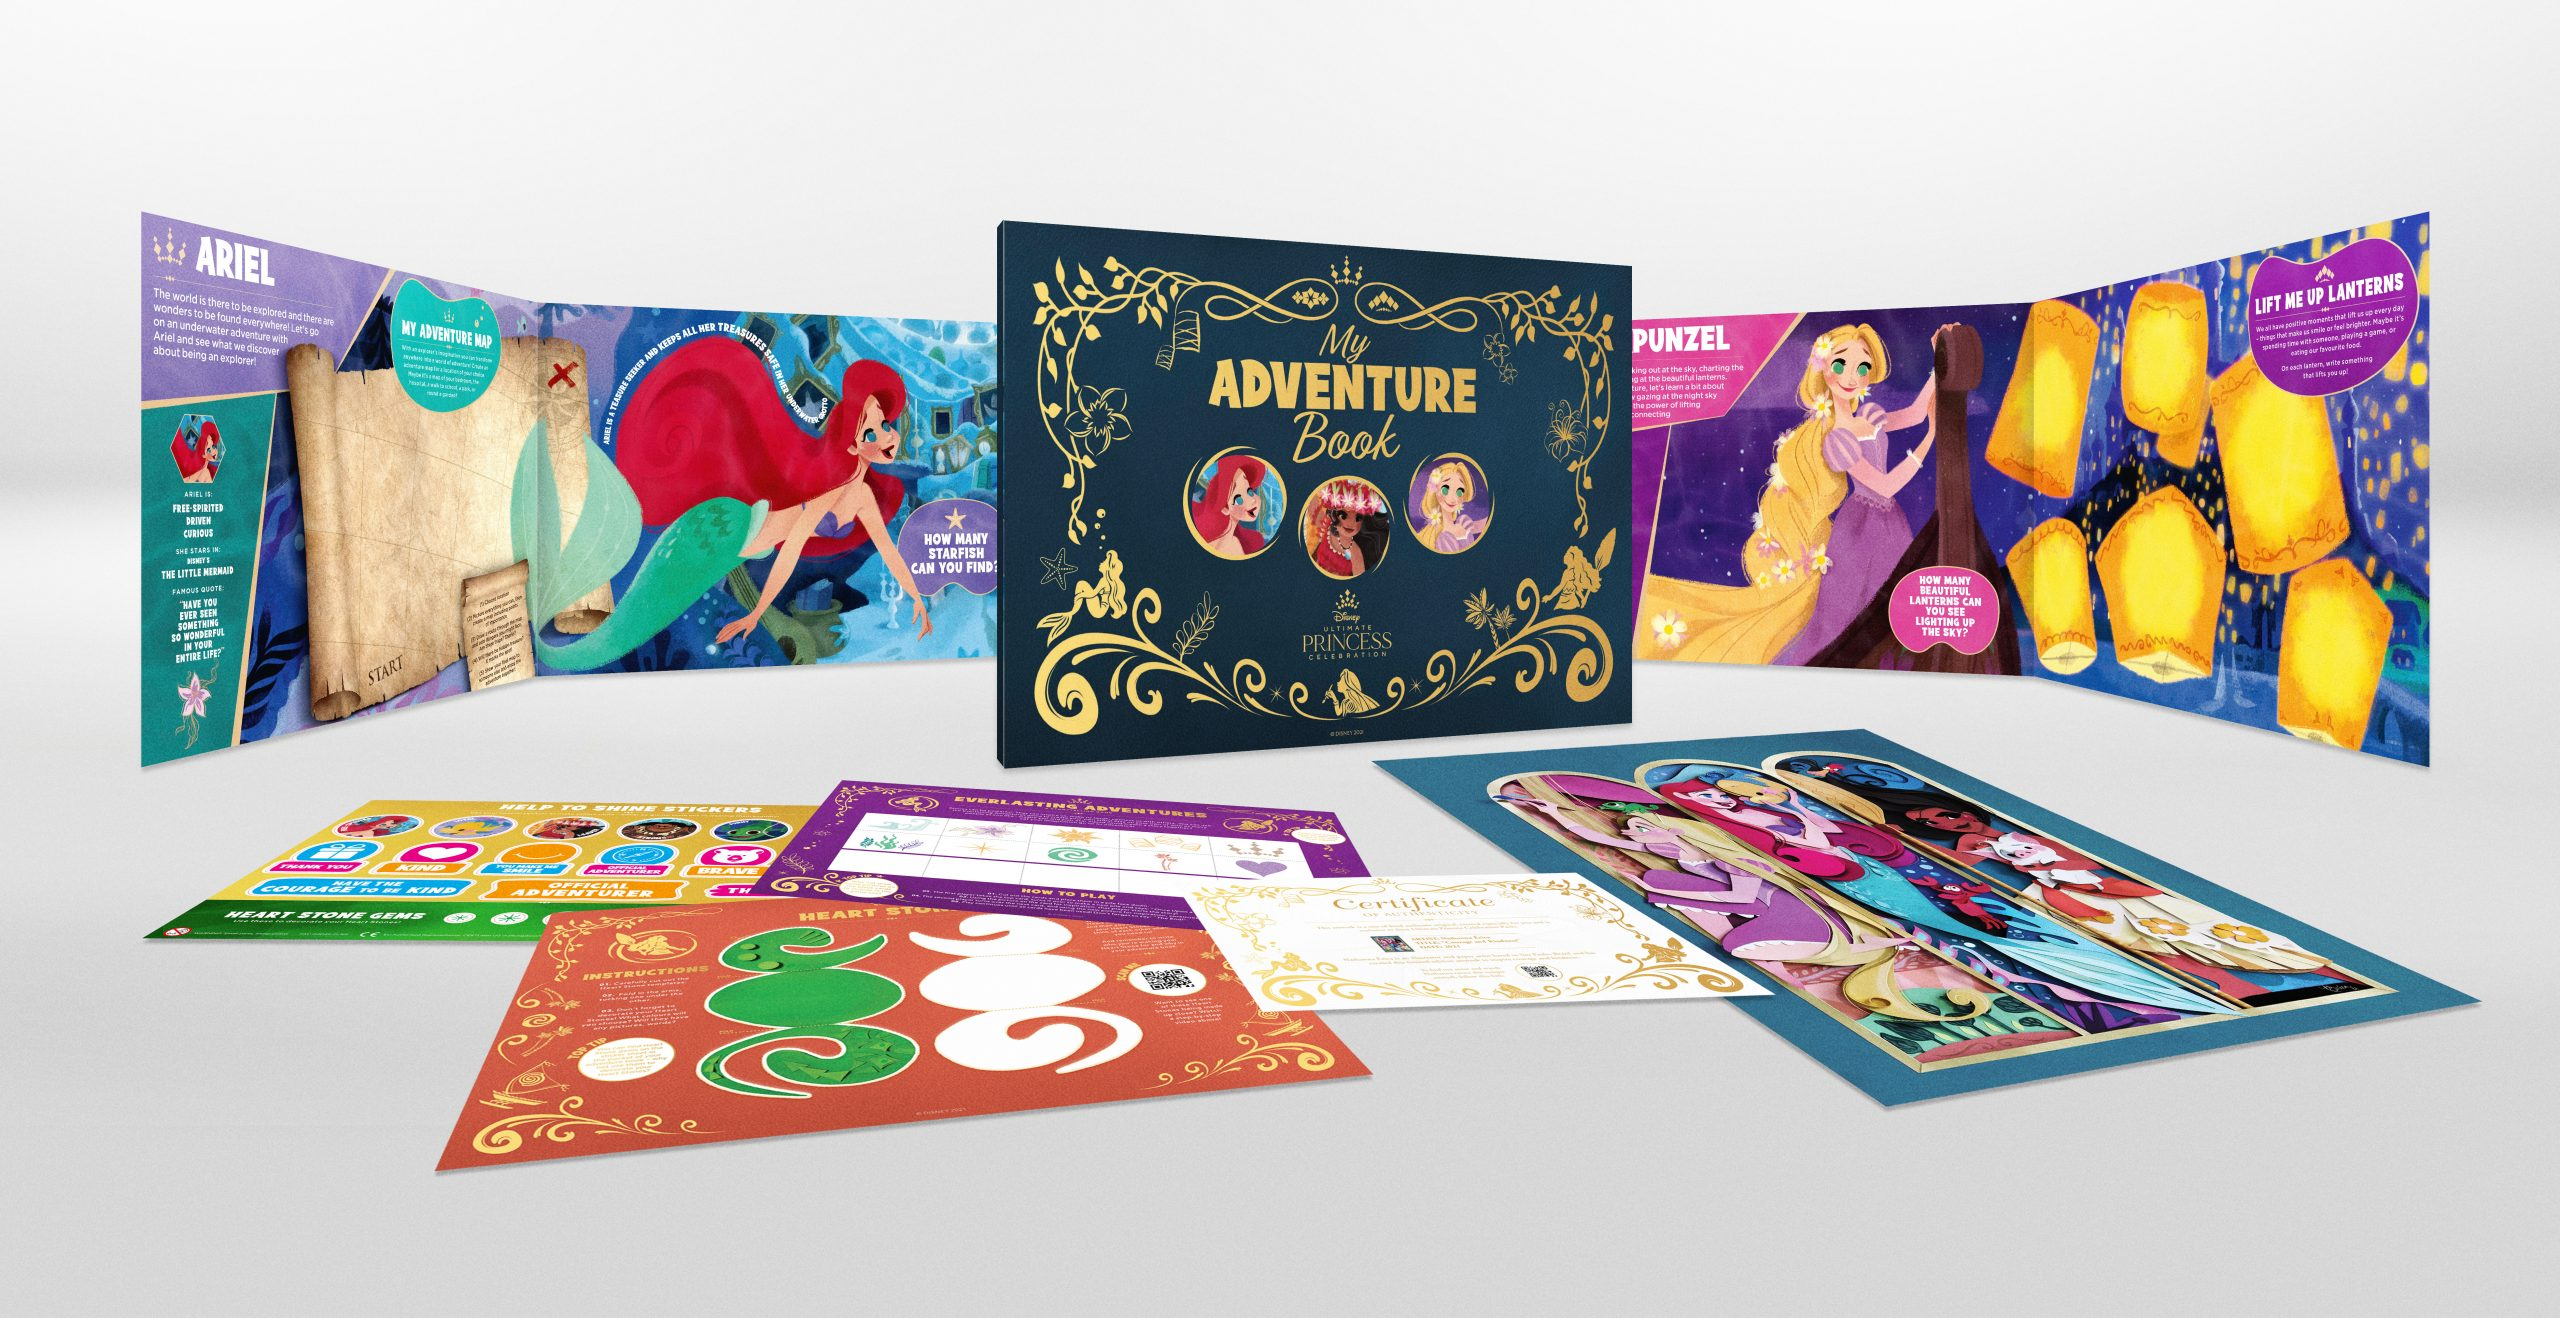 Disney EMEA creates 45,000 adventure packs for hospitals and places of care as part of the Ultimate Princess Celebration campaign